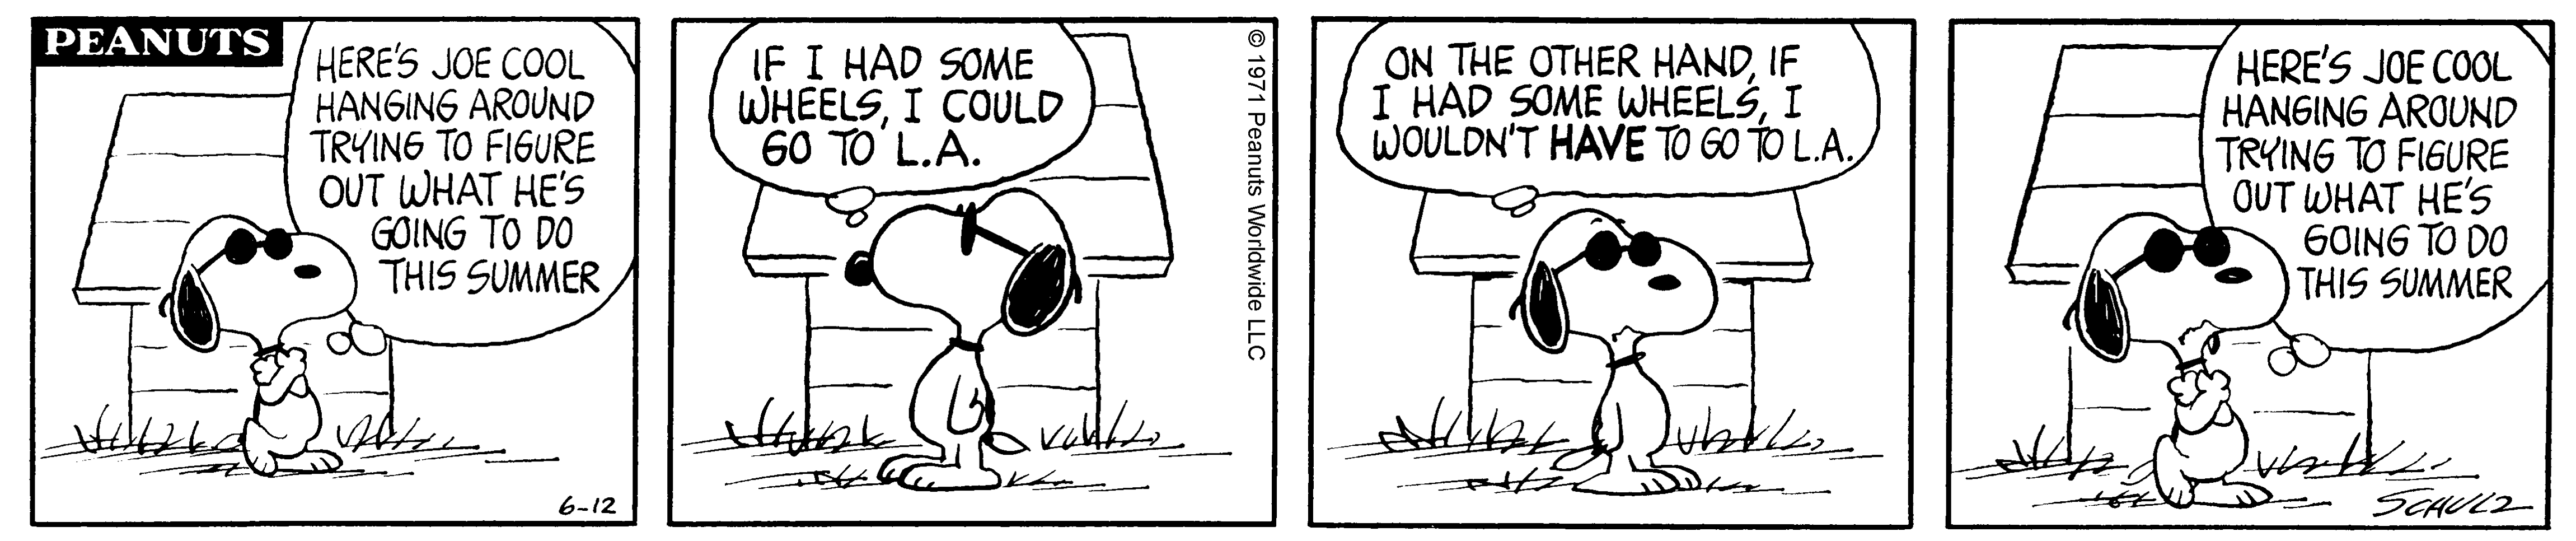 A black and white comic strip of a dog wearing sunglasses and standing in front of a small house.